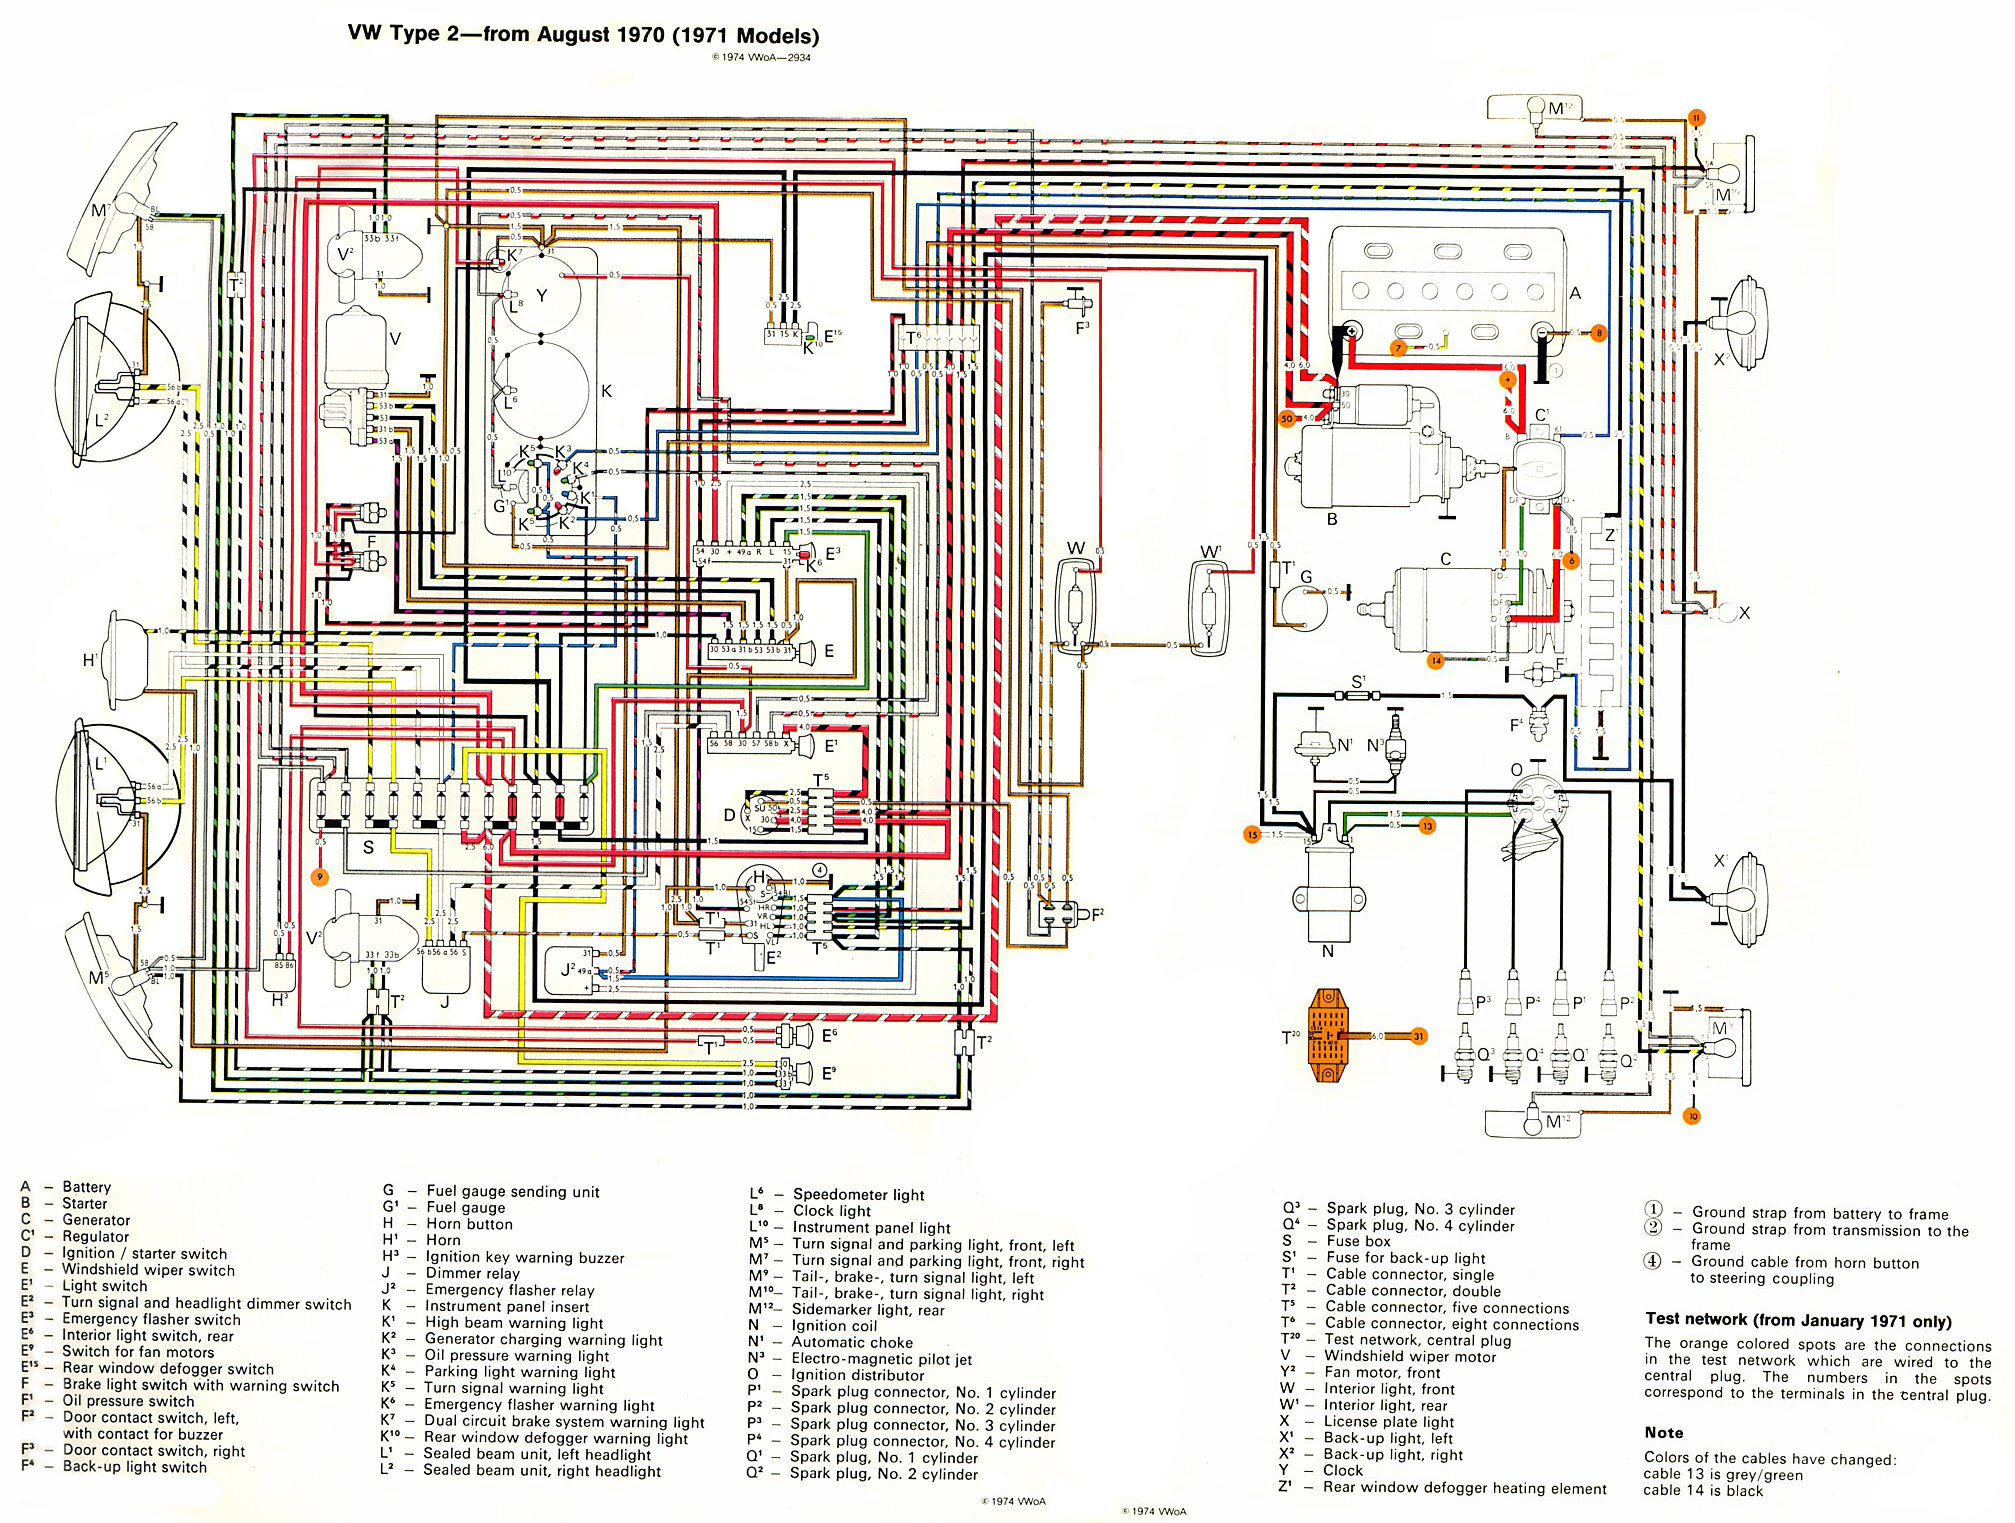 baybus_71_fixed bad boy buggy wiring diagram 36 volt ezgo wiring diagram 1997 vw golf wiring diagram at n-0.co